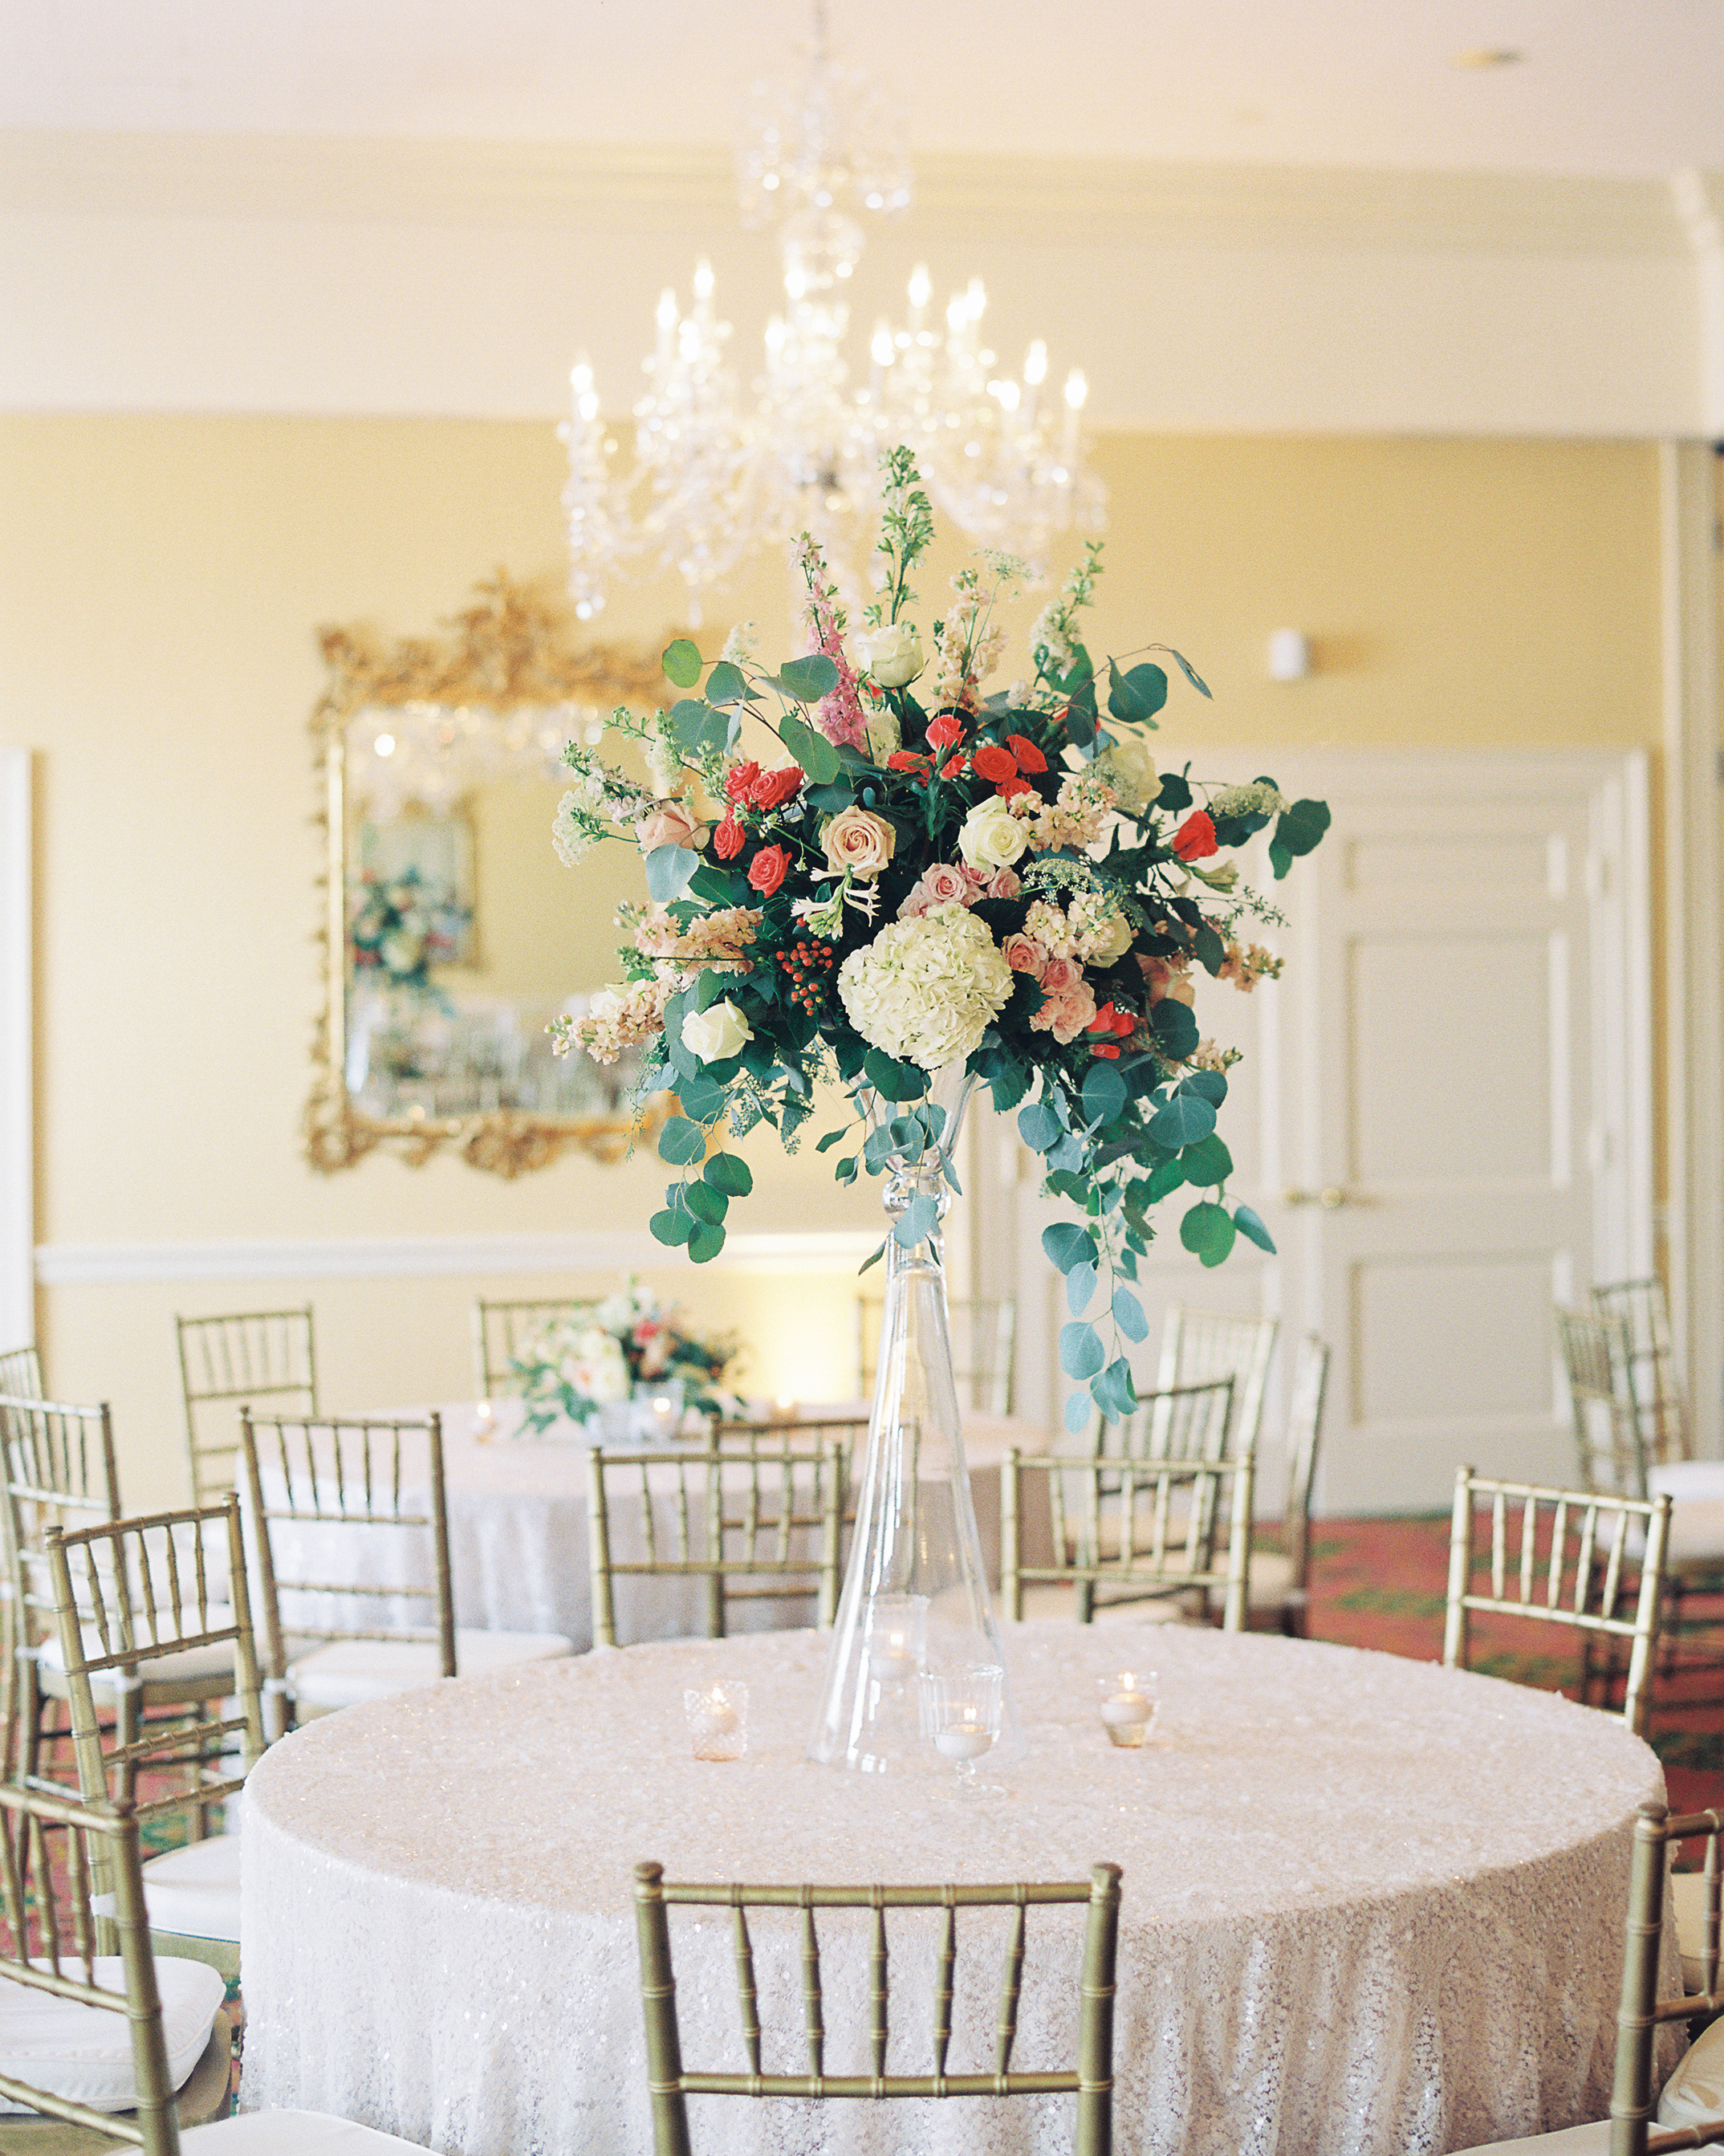 molly-patrick-wedding-centerpiece-3022-s111760-0115.jpg